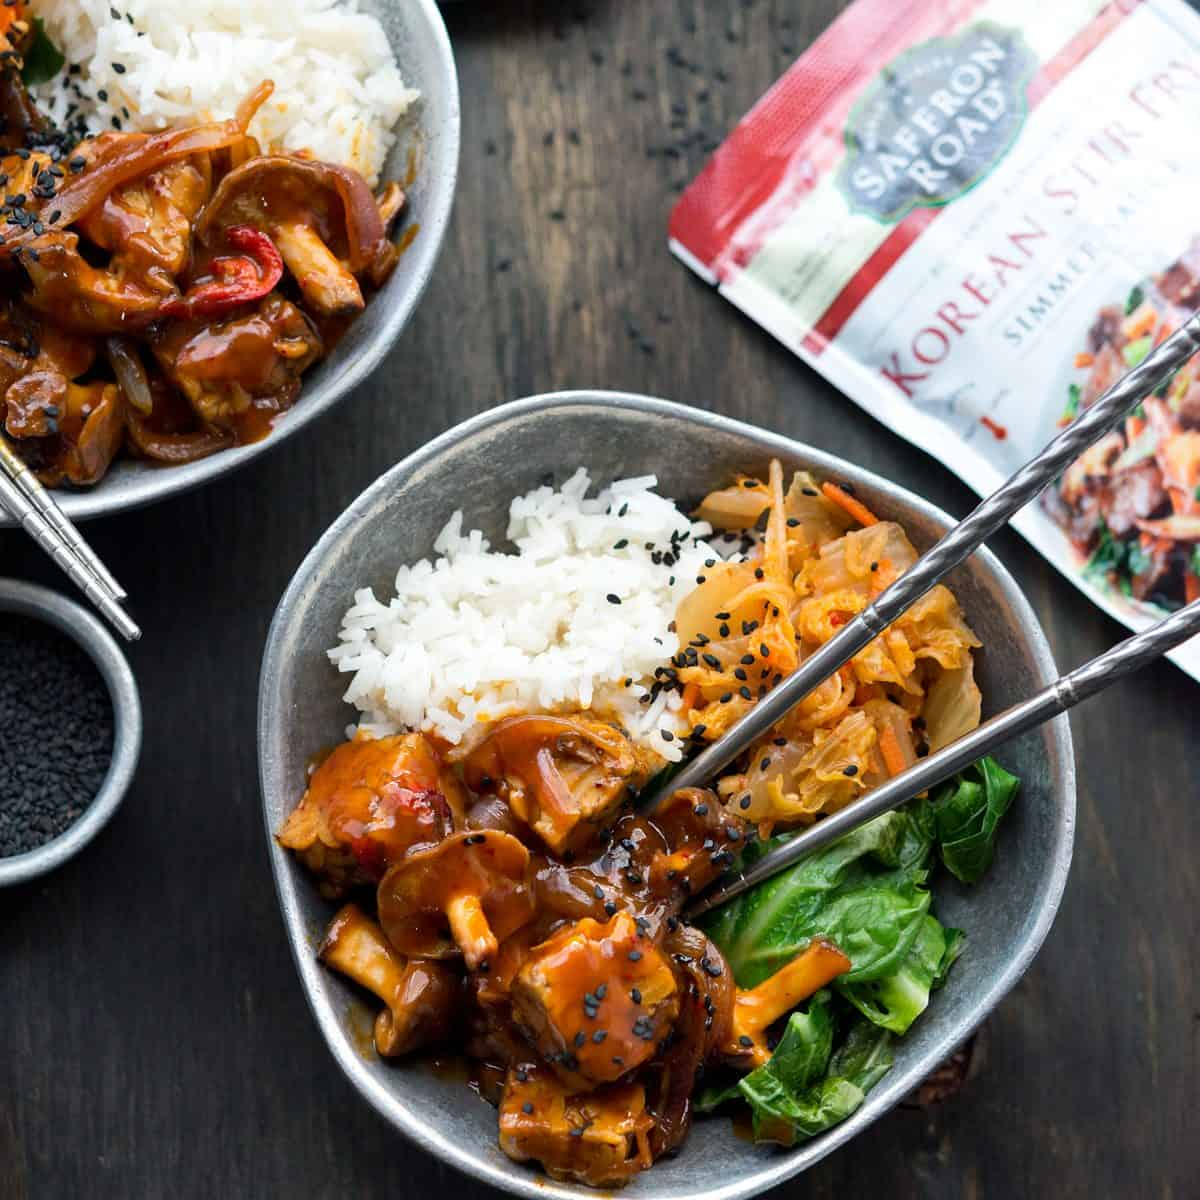 This Korean Tempeh Shiitake Bowl is easy, filling and made with delicious Saffron Road Korean Stir-fry sauce. Enjoyed with rice, kimchi and greens! #SaffronRoadFood #vegan